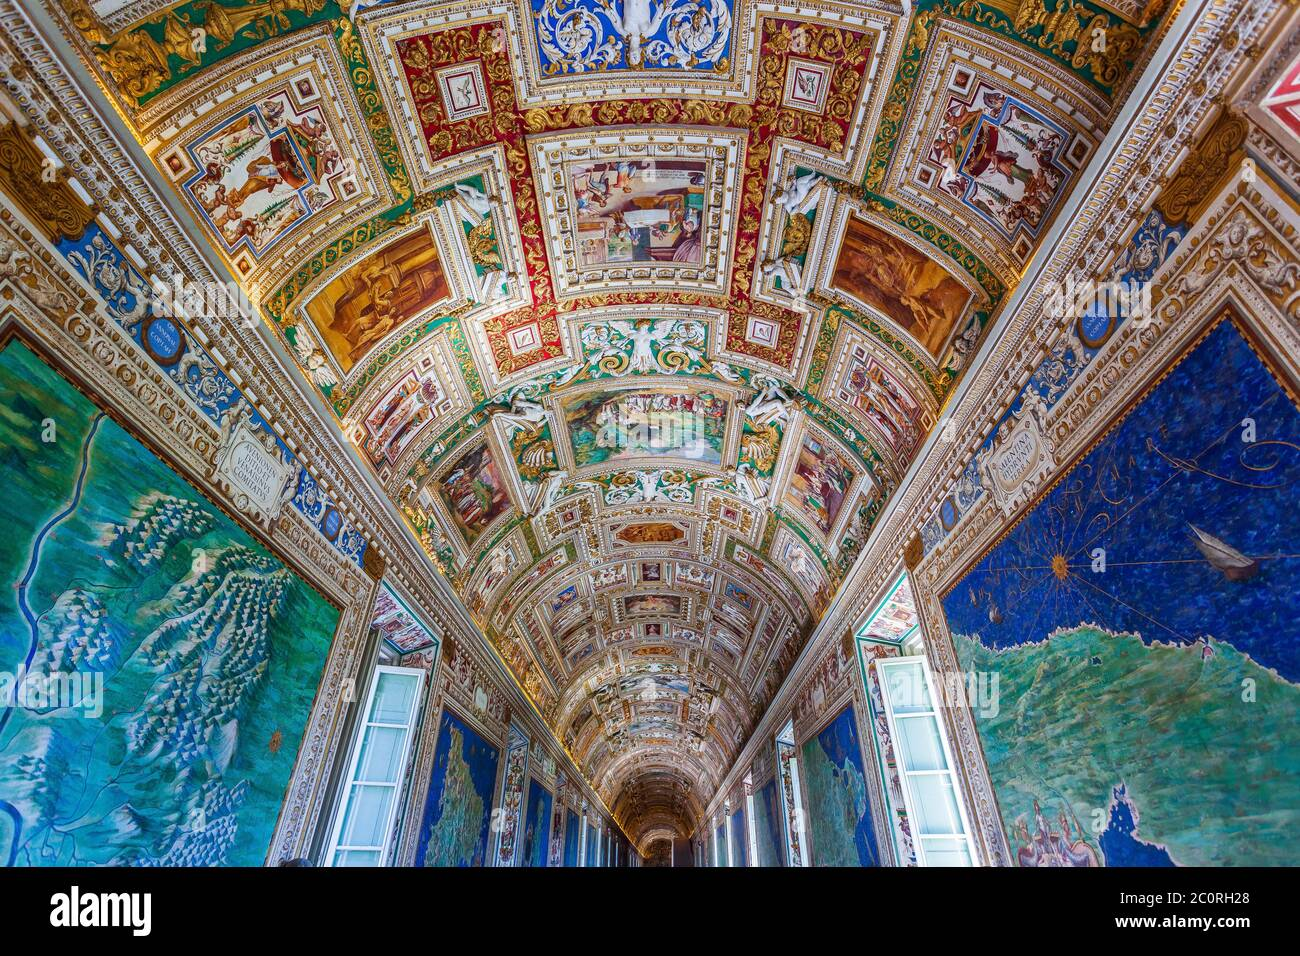 Rome, Italy - November 3, 2019: Paintings on the walls and the ceiling in the Gallery of Maps, at the Vatican Museum. Stock Photo